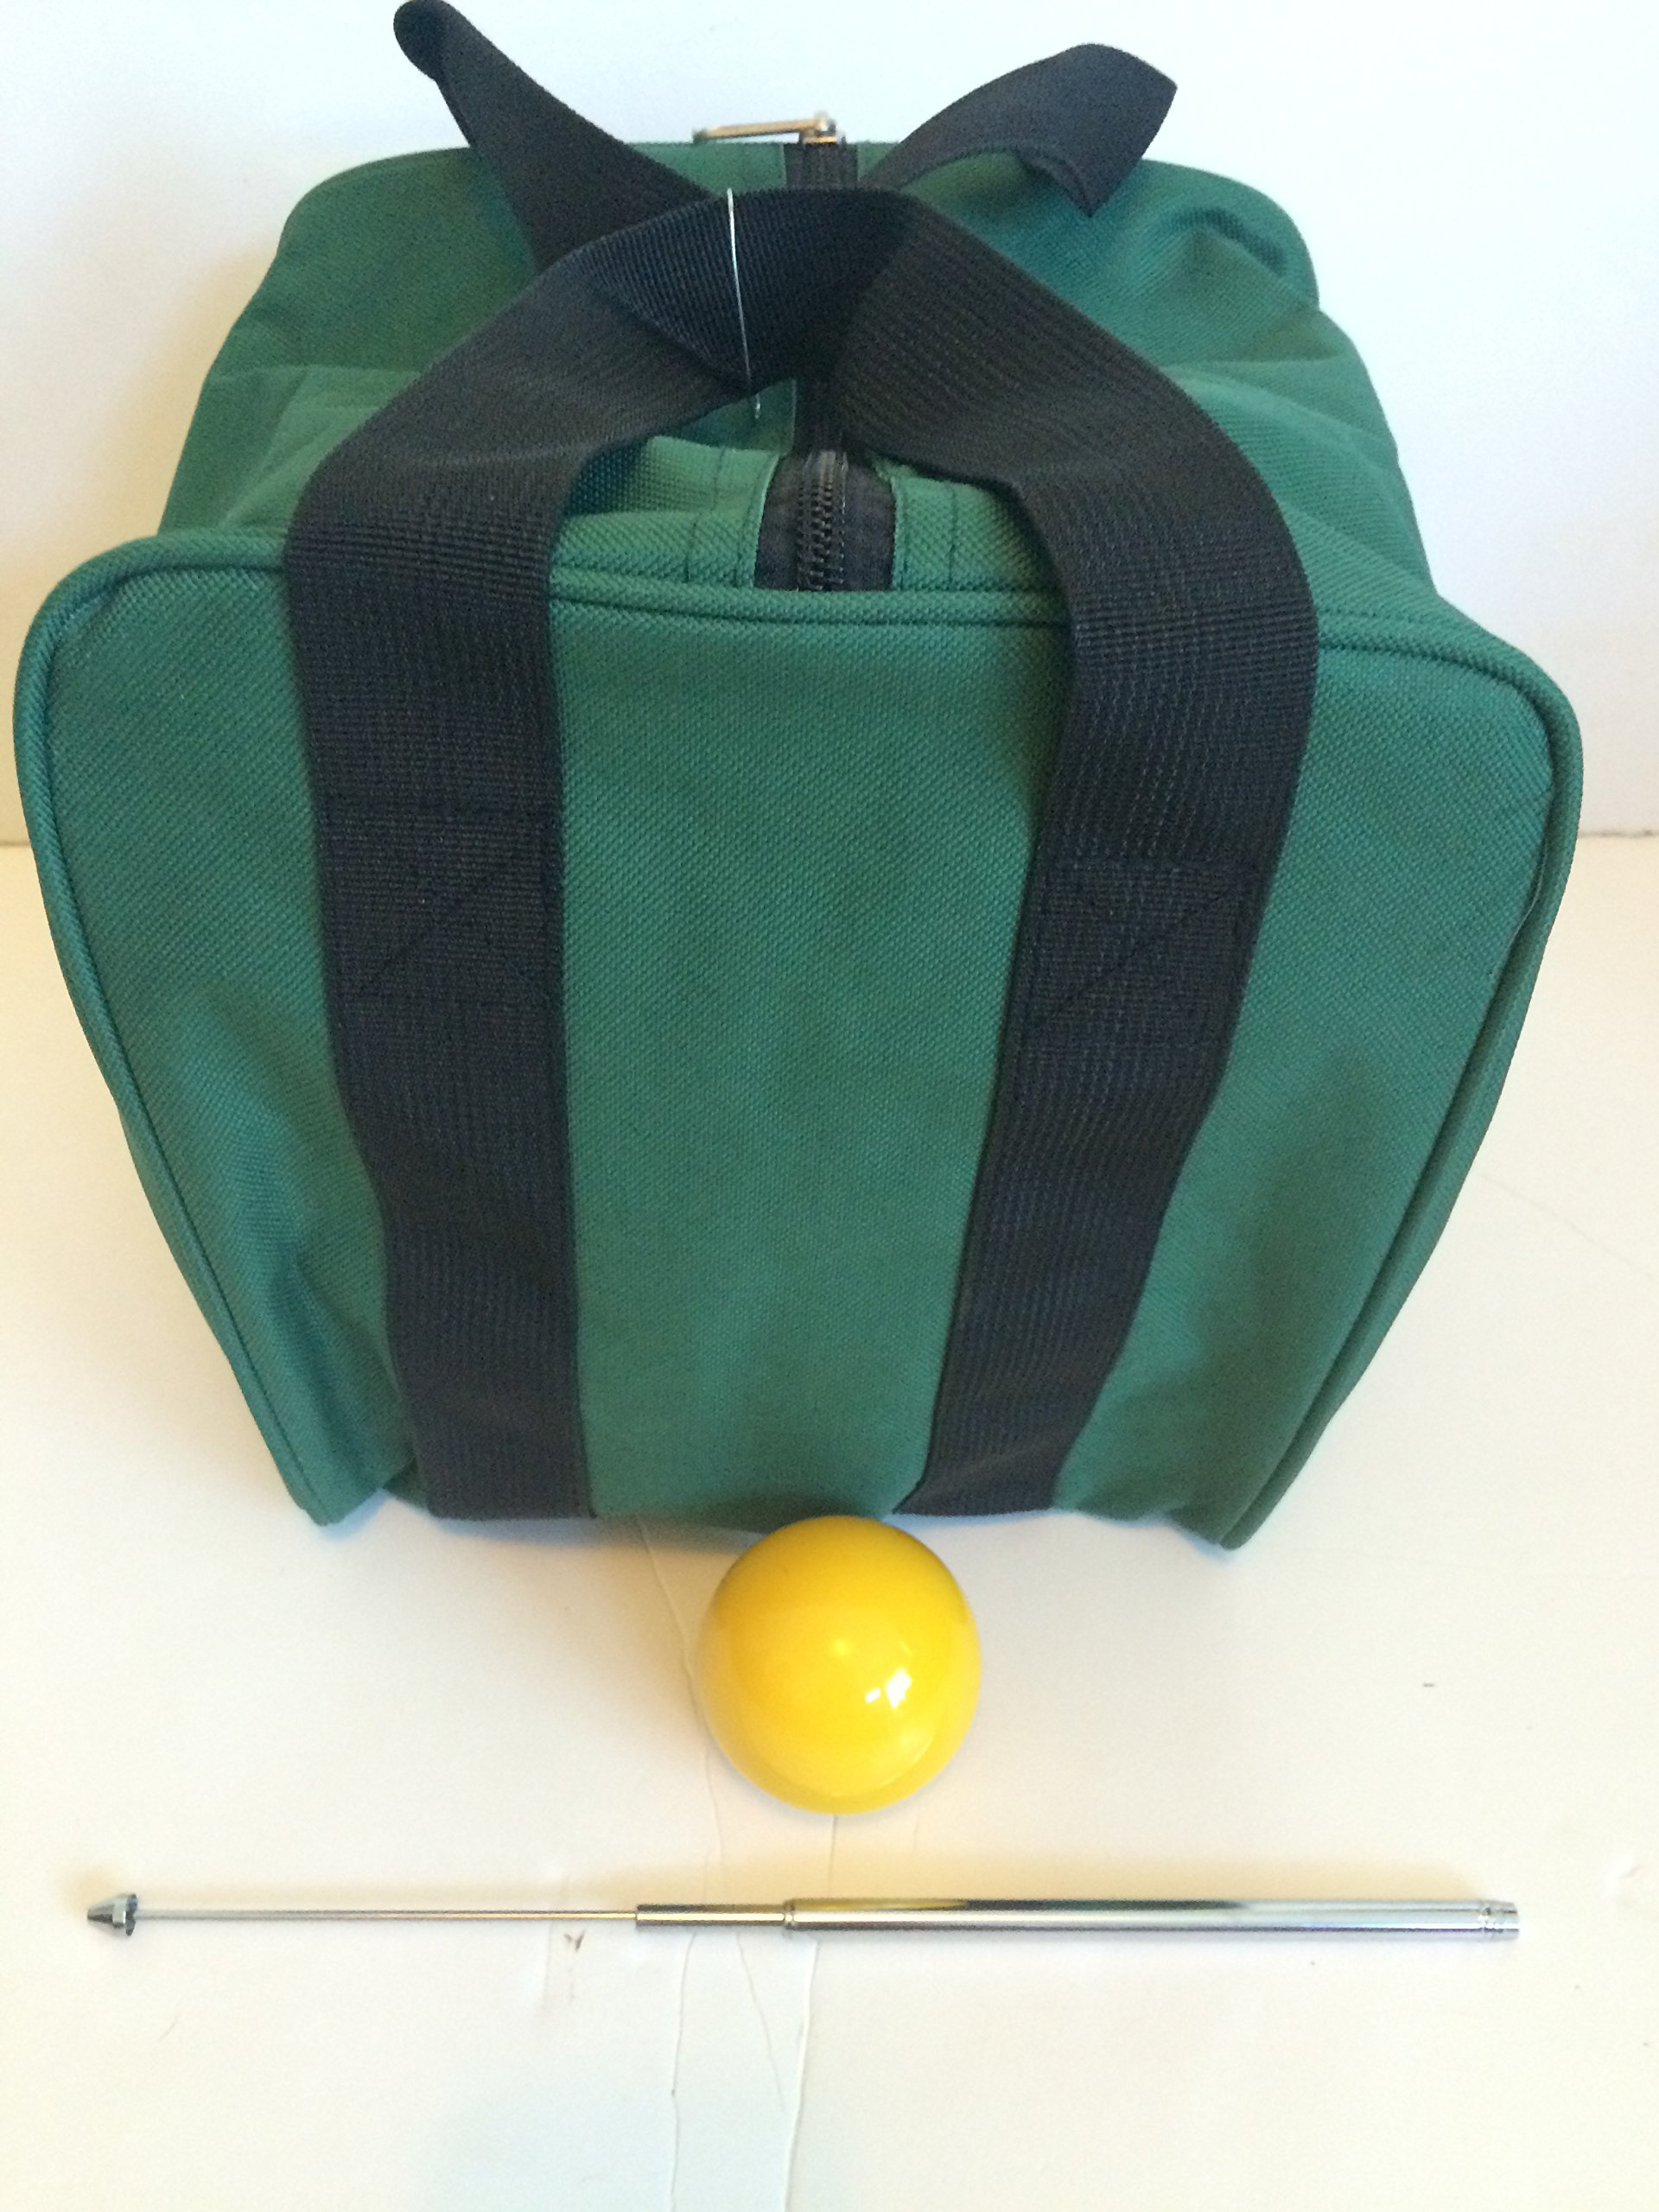 Unique Bocce Accessories Package - Extra Heavy Duty Nylon Bocce Bag (Green with Black Handles), Yellow pallina, Extendable Measuring Device by BuyBocceBalls